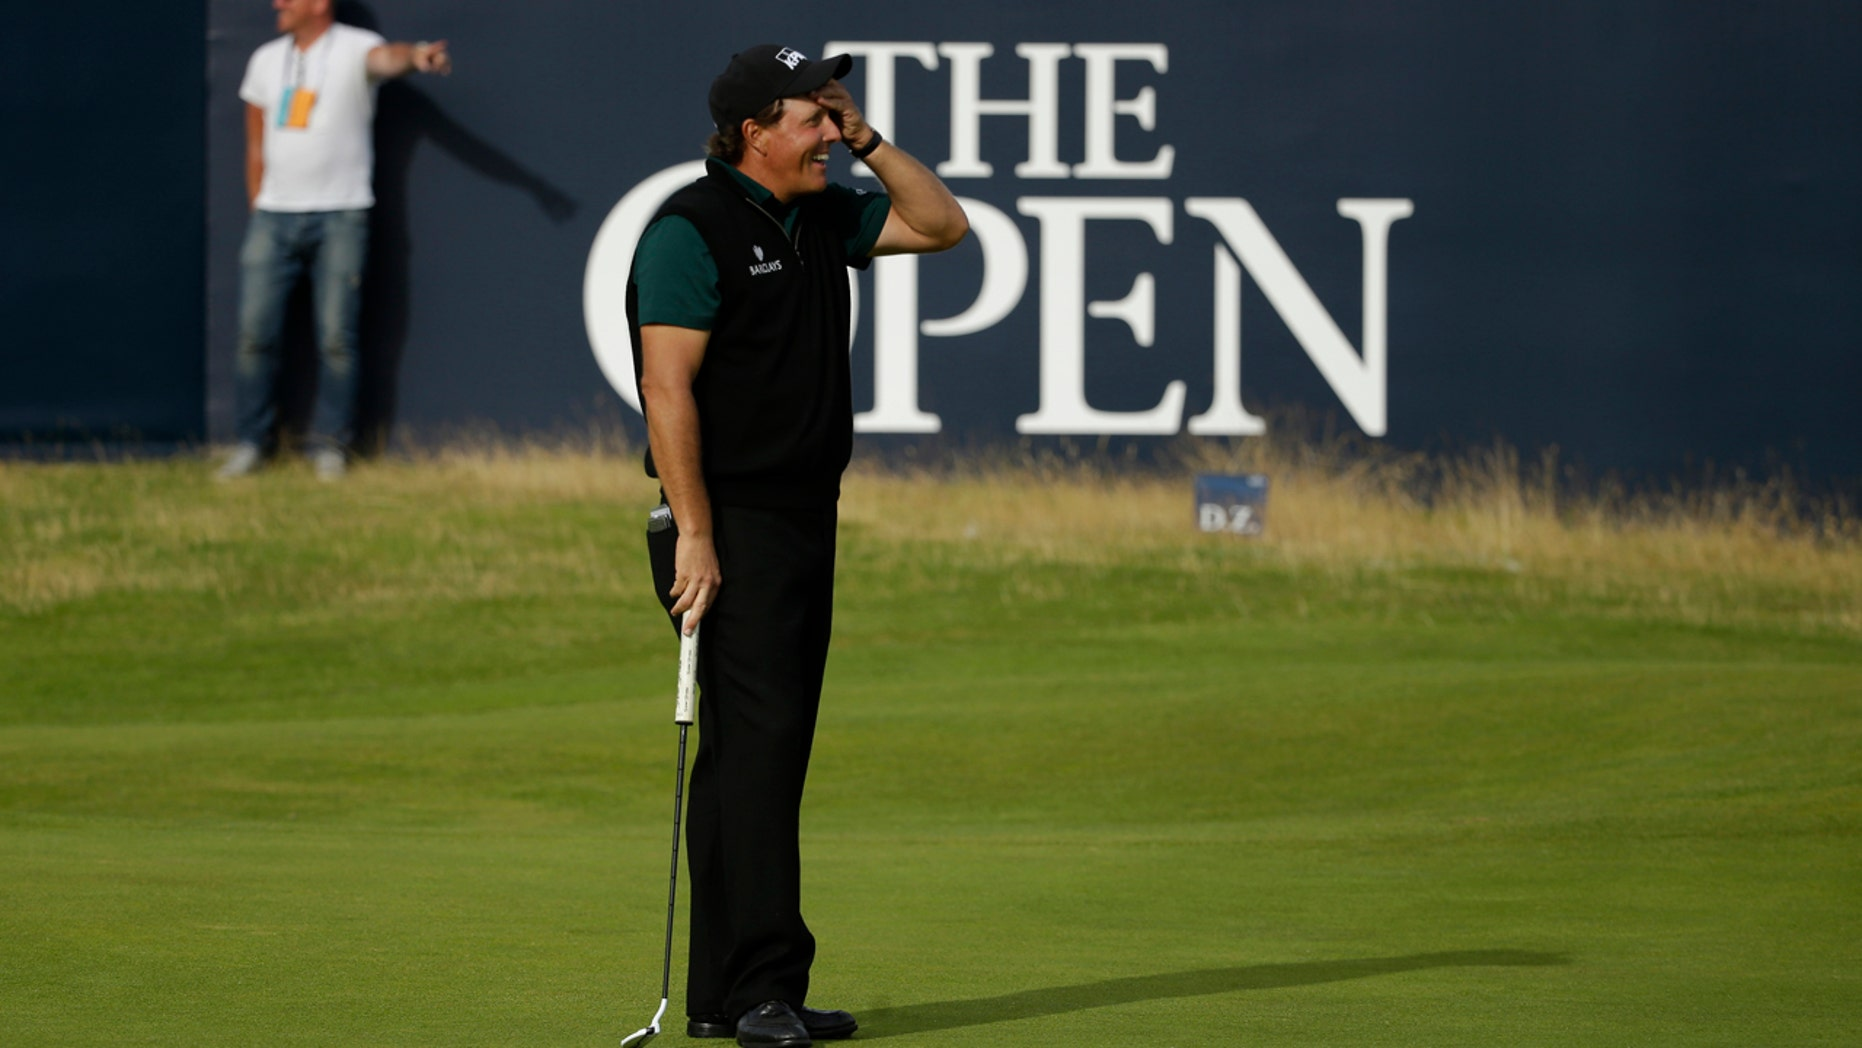 July 14, 2016: Phil Mickelson reacts as he narrowly misses a birdie putt on the 18th green during the first round of the British Open Golf Championships at the Royal Troon Golf Club in Troon, Scotland.